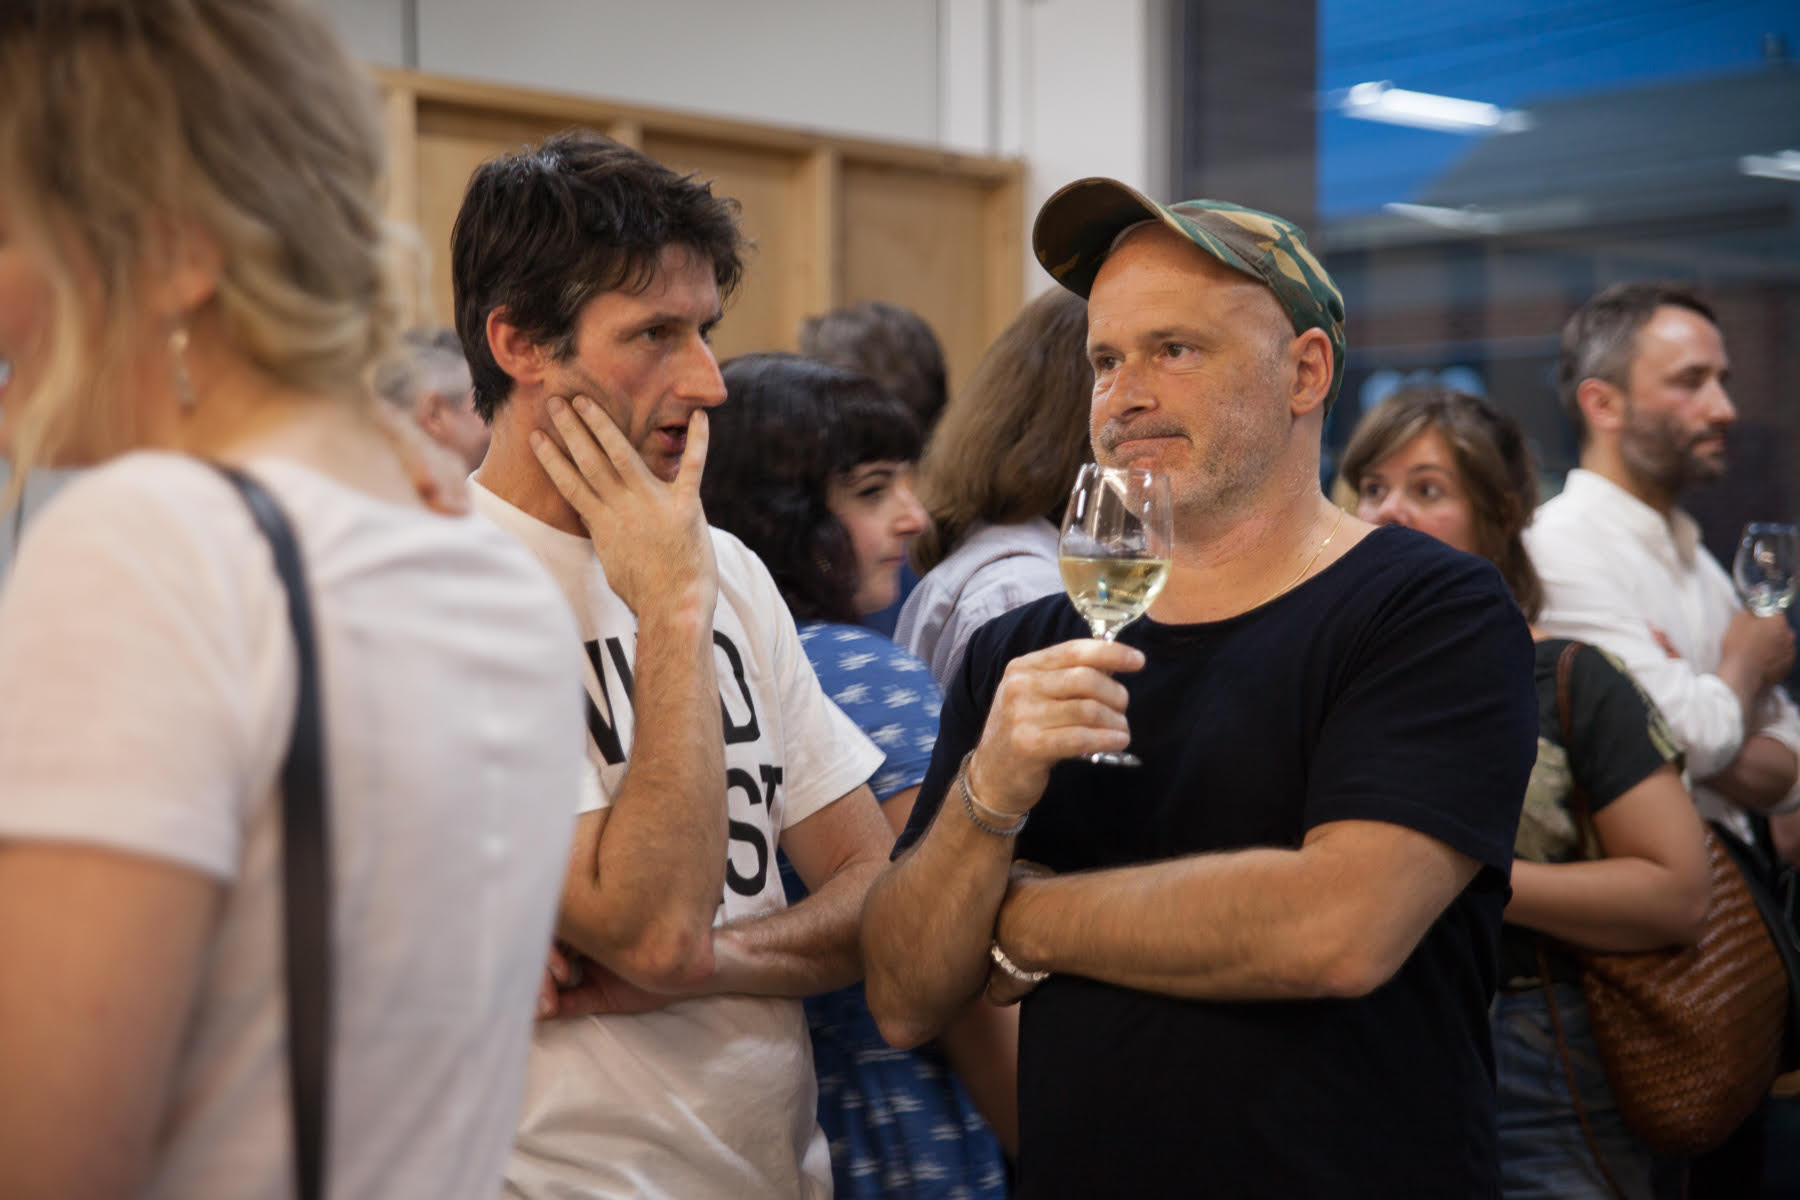 Damiano Bertoli and Benjamin Armstrong pictured at the opening event for exhibitions It's Like That, Sangeeta Sandrasegar, and A Dark and Quiet Place, David Noonan, in 2018.